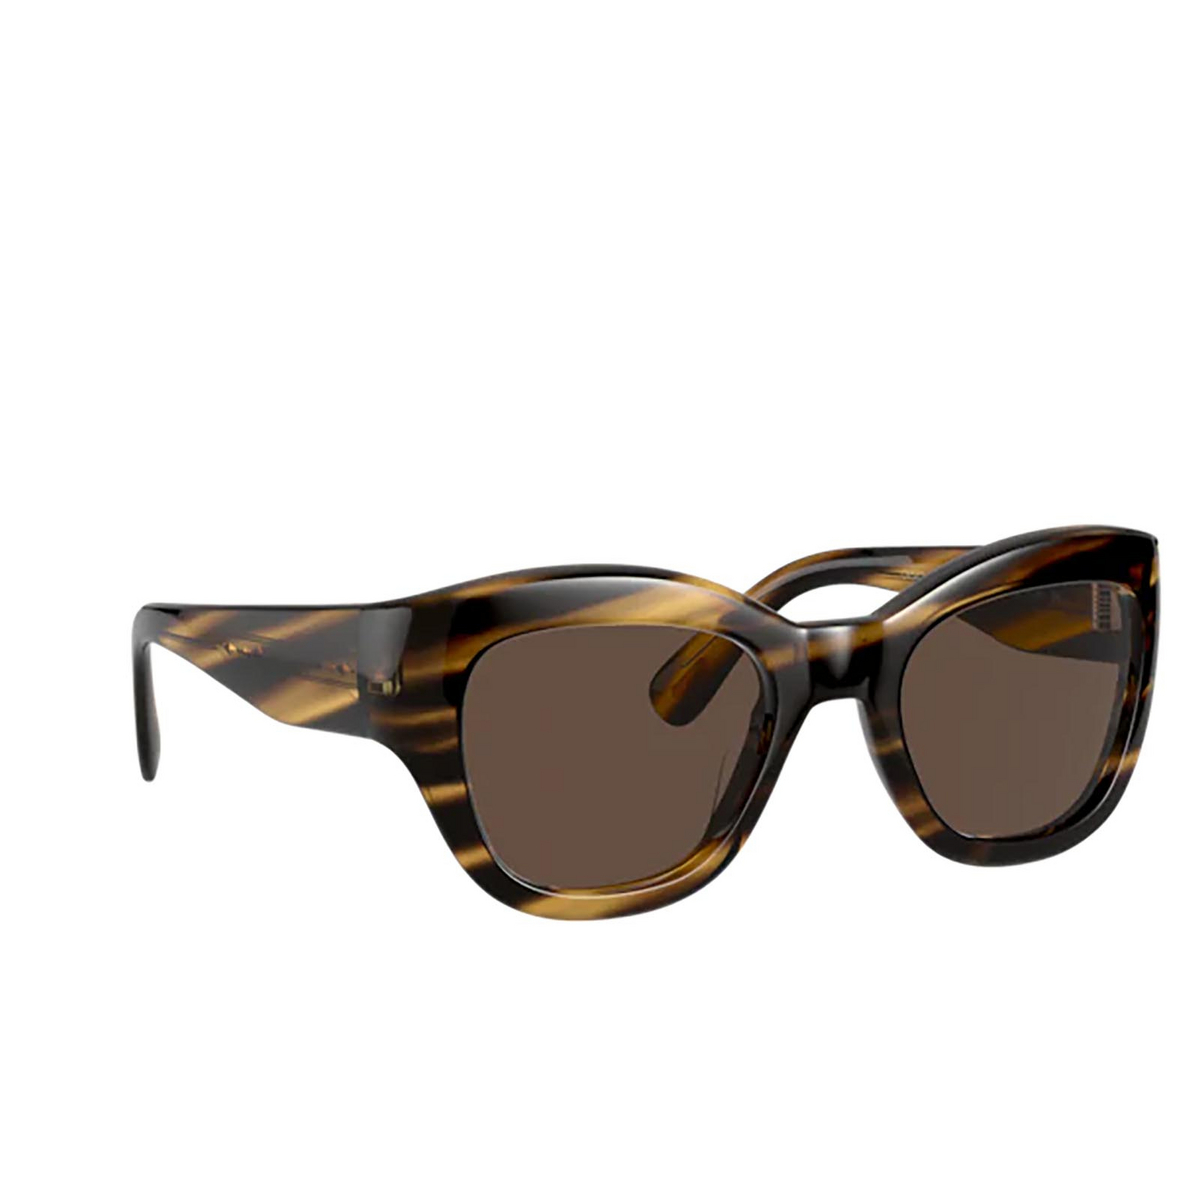 Oliver Peoples® Butterfly Sunglasses: Lalit OV5430SU color Cocobolo 100373 - three-quarters view.